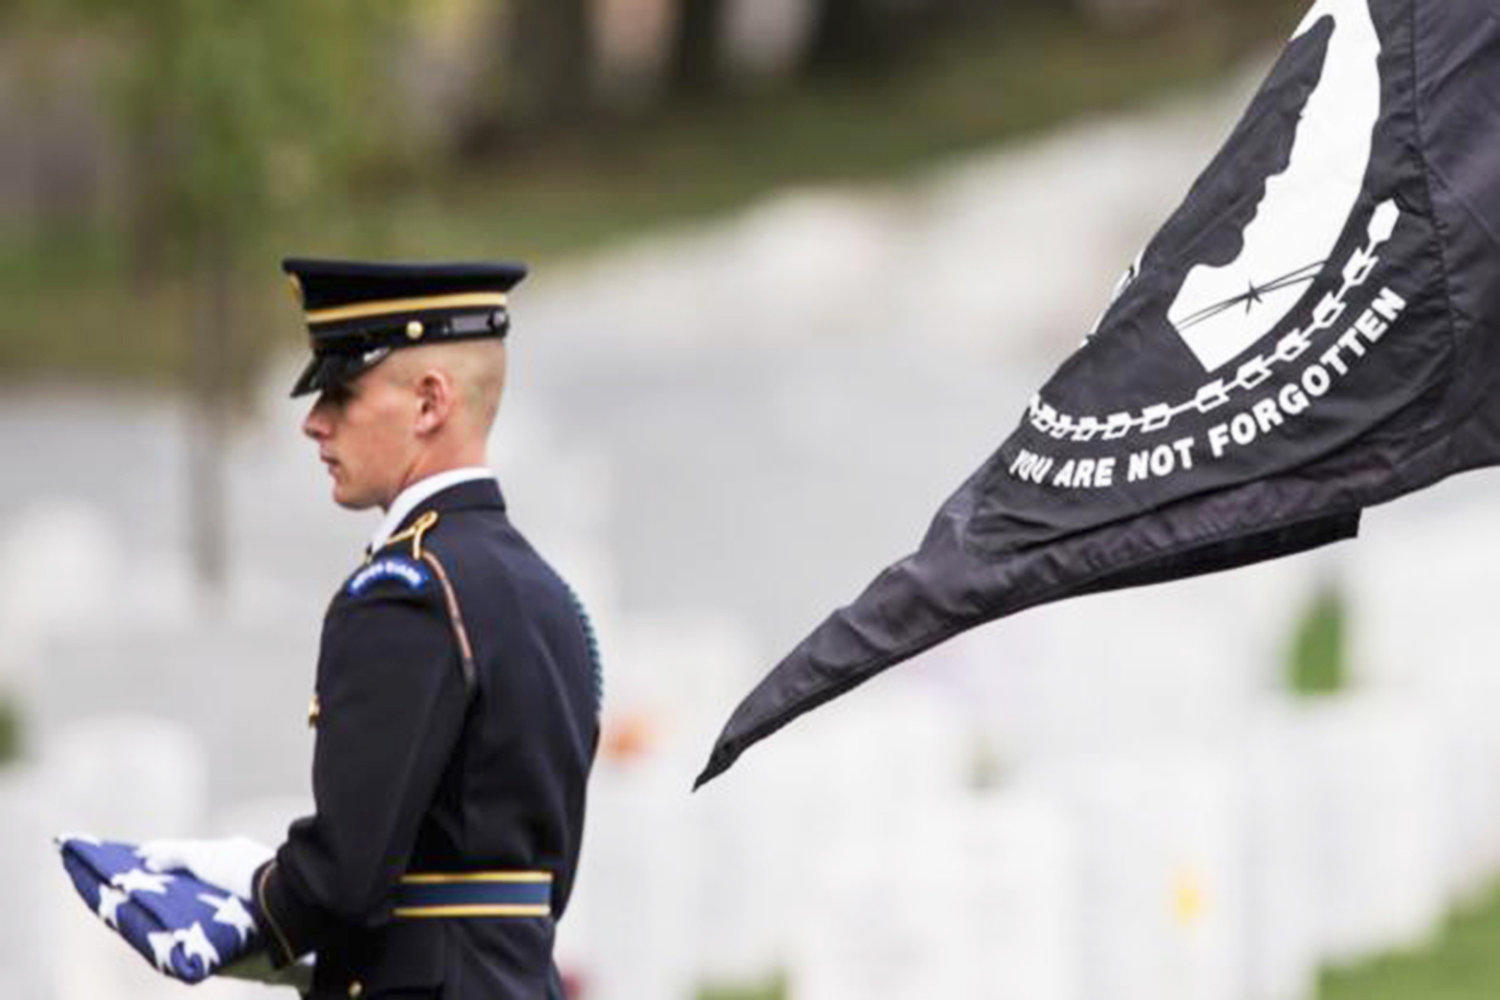 A MEMBER OF THE U.S. Army's 3rd U.S. Infantry Regiment (The Old Guard) holds an American flag as he stands next to the POW/MIA flag before a service for U.S. Army Cpl. Robert E. Meyers of Greencastle, Pa. Meyers was a soldier who went missing in the Korean War, whoseremains have been identified due to advances in technology. His remains were buried in 2015, at Arlington National Cemetery in Arlington, Va.